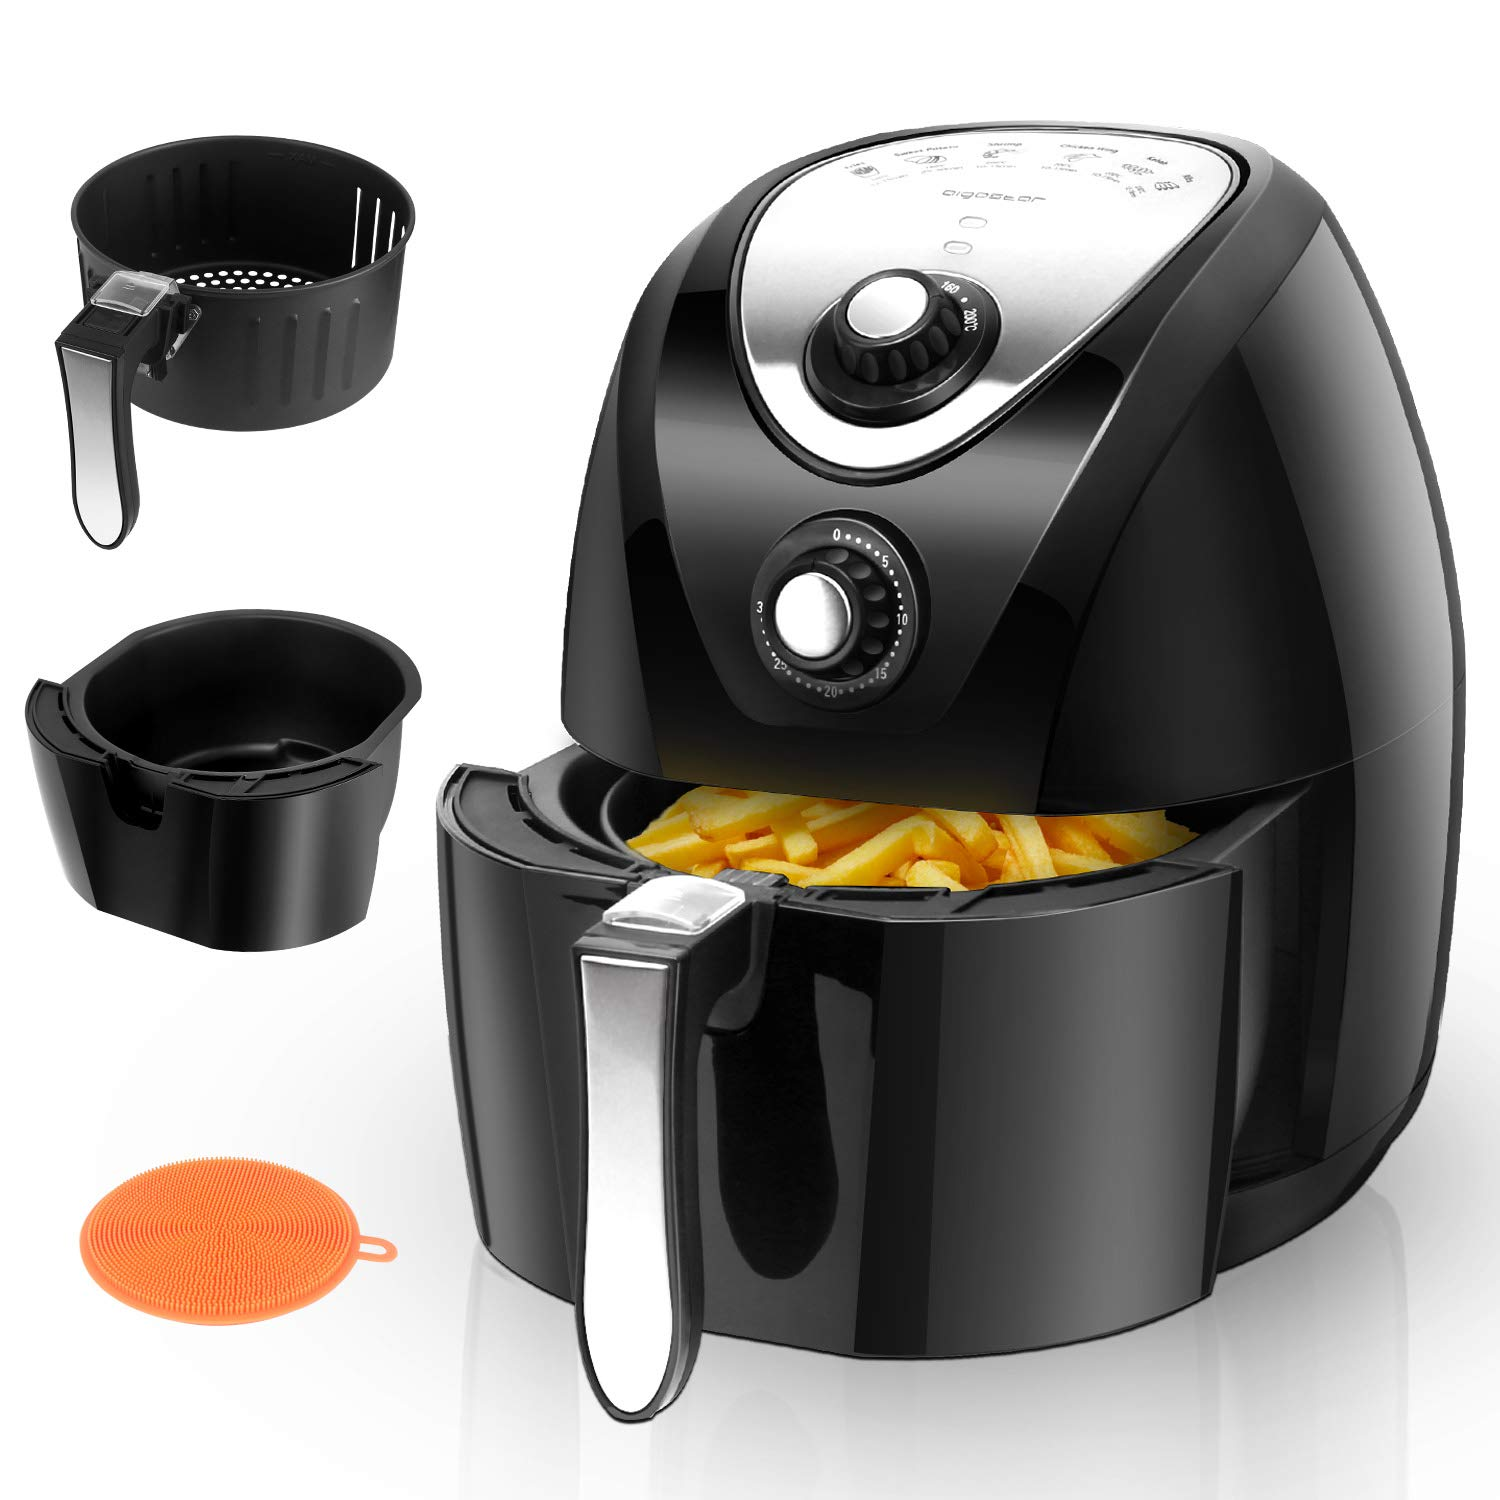 Aigostar Dragon Pro Air Fryer, 3.4Qt Electric Hot Air Fryers Oven Oilless Cooker with Detachable Non-stick Basket & Automatic Timer & Temperature Control for Fast Healthier Fried Food, 1400W by Aigostar